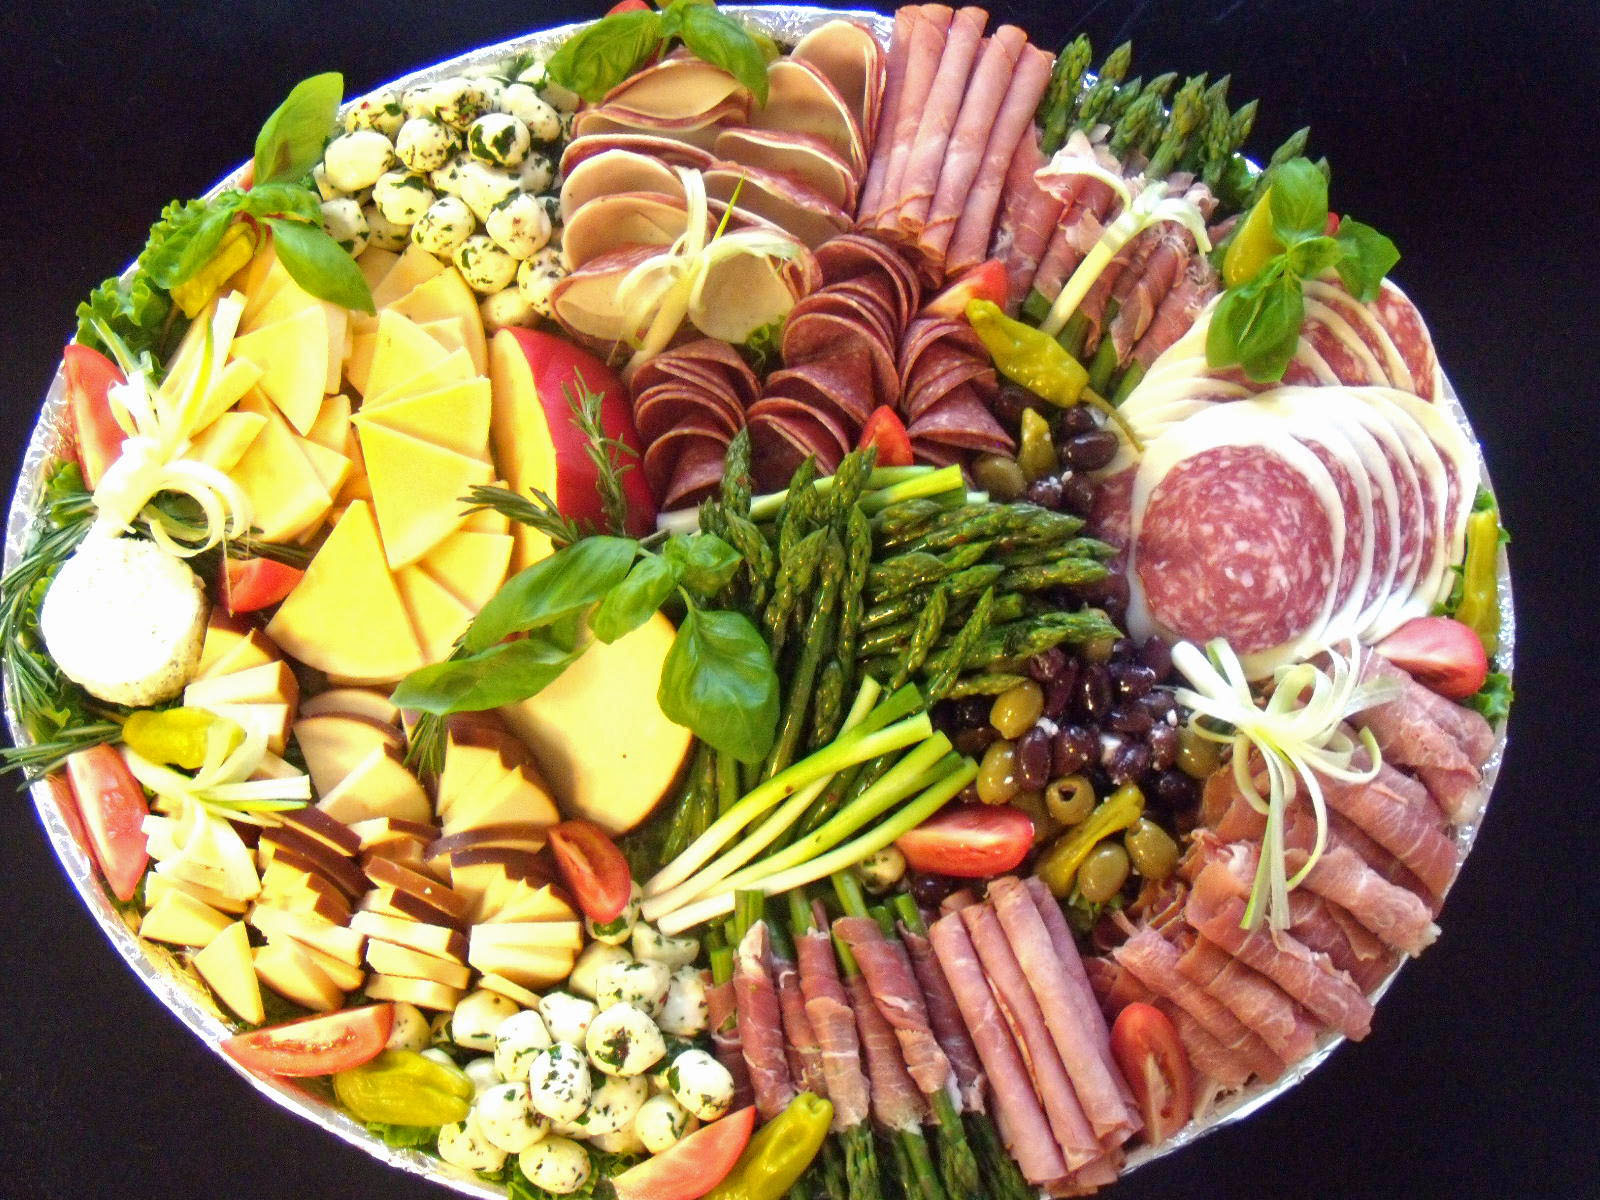 Catering Service | Restaurant In Mississauga